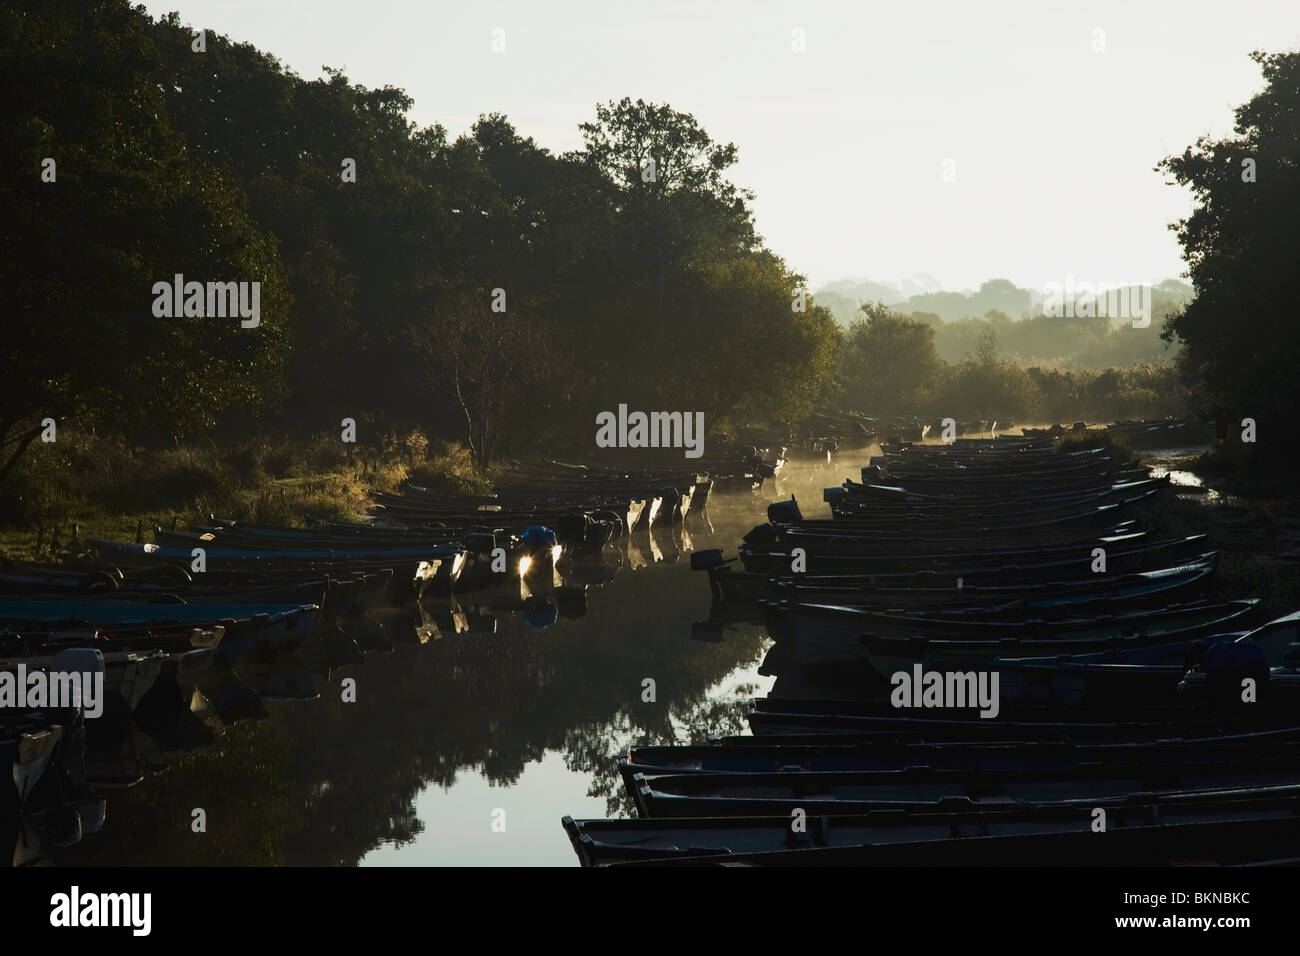 Killarney, County Kerry, Ireland; Boats Moored Along The Shore Of Lough Leane - Stock Image